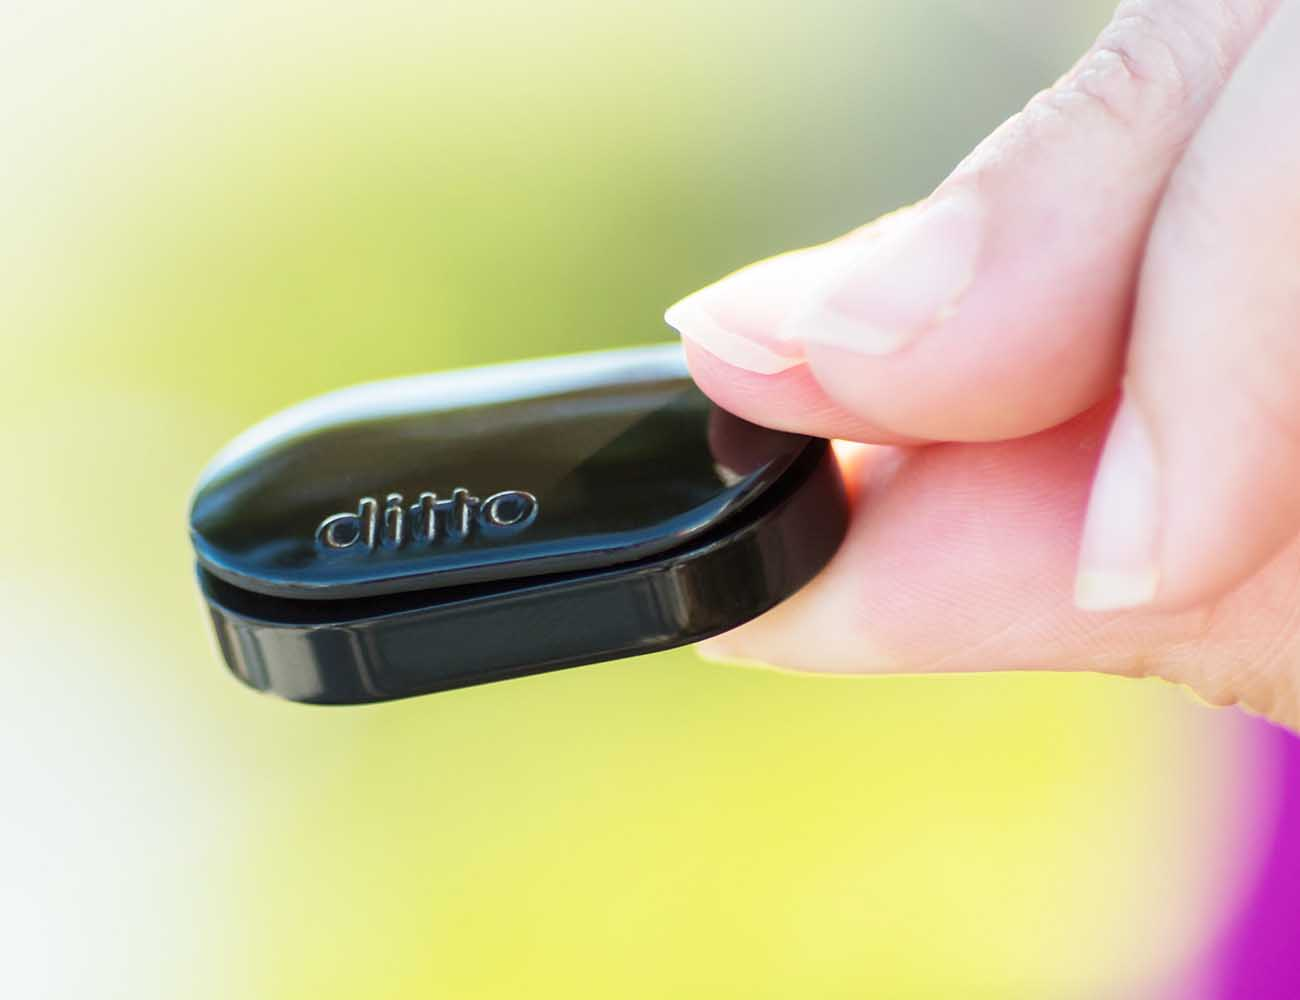 Ditto – Wearable for Smartphone Notifications